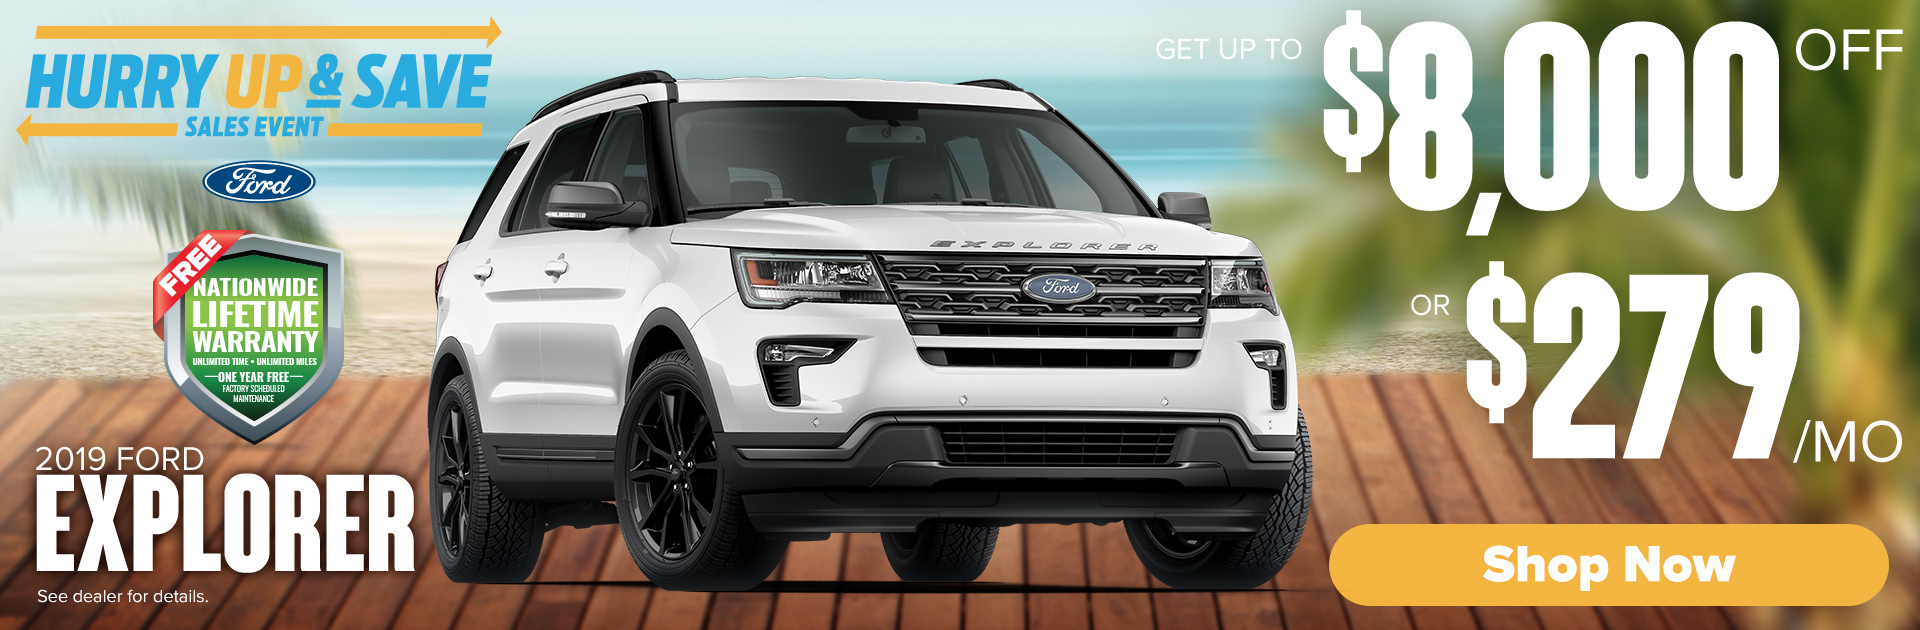 Lakeland Ford Dealership - New Cars, Crossovers, SUVs, Trucks in